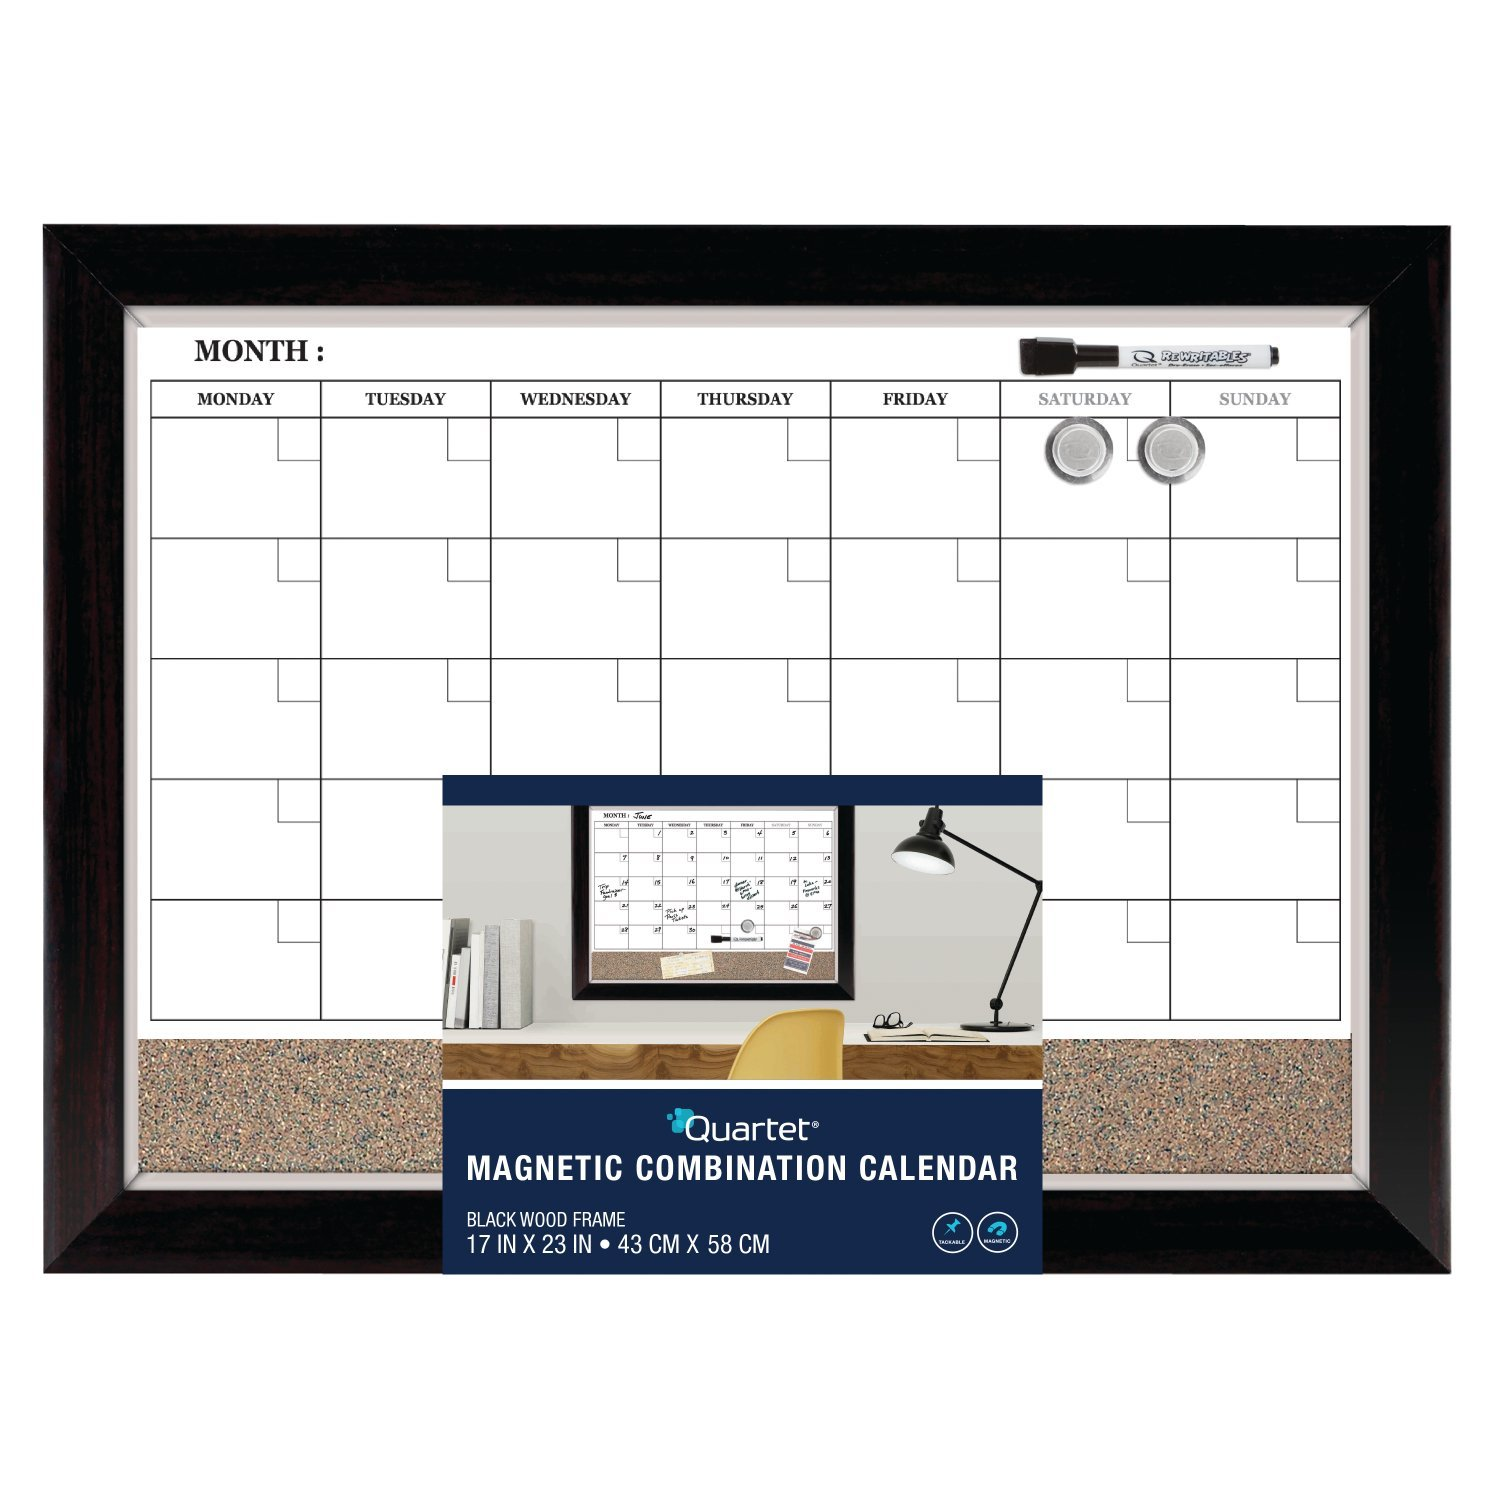 Amazon.com : Quartet Dry Erase Calendar Board, Planner, Magnetic ...